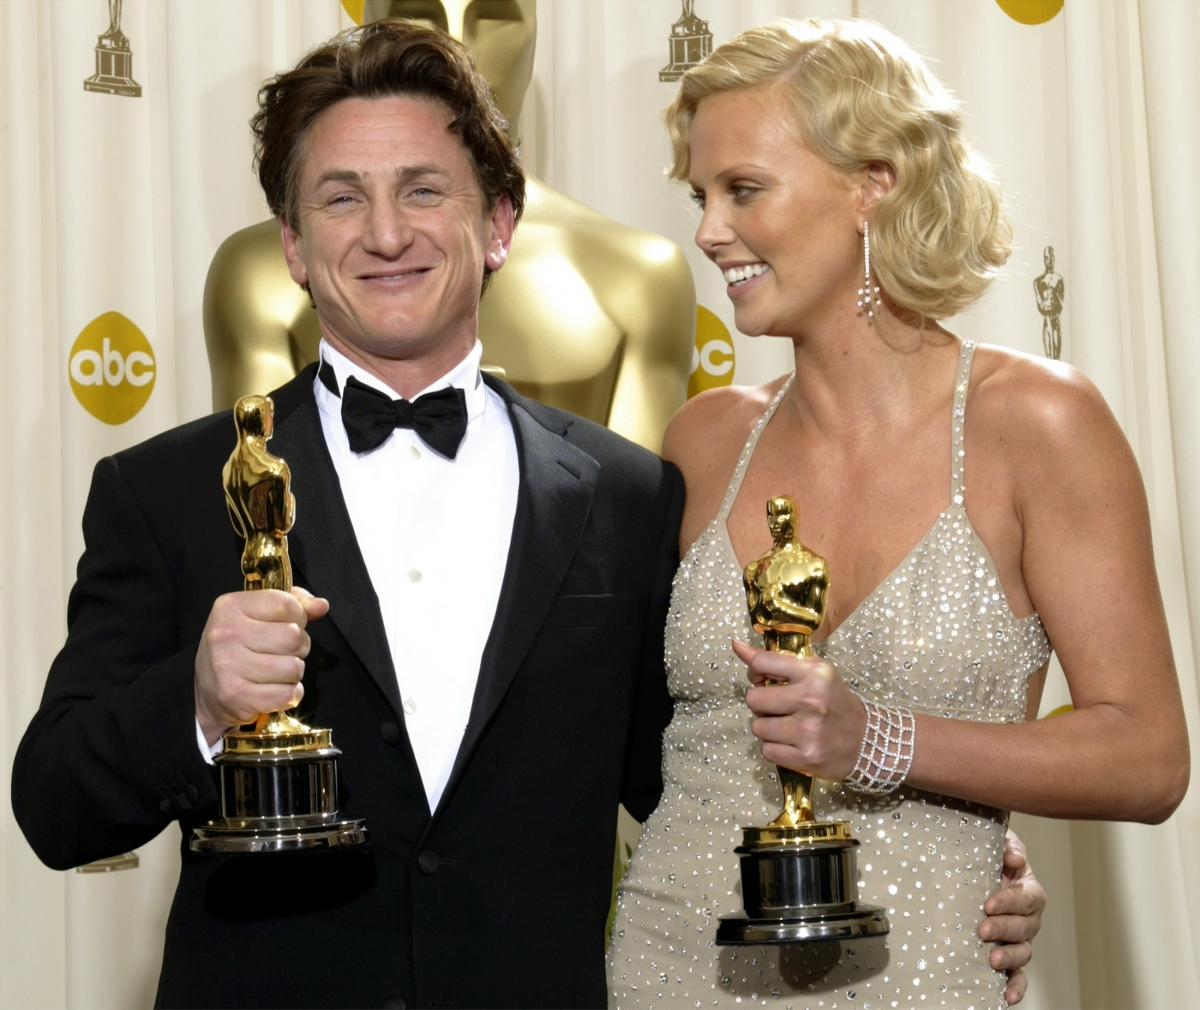 Academy Award-winning actress Charlize Theron and Sean Penn are reportedly dating.